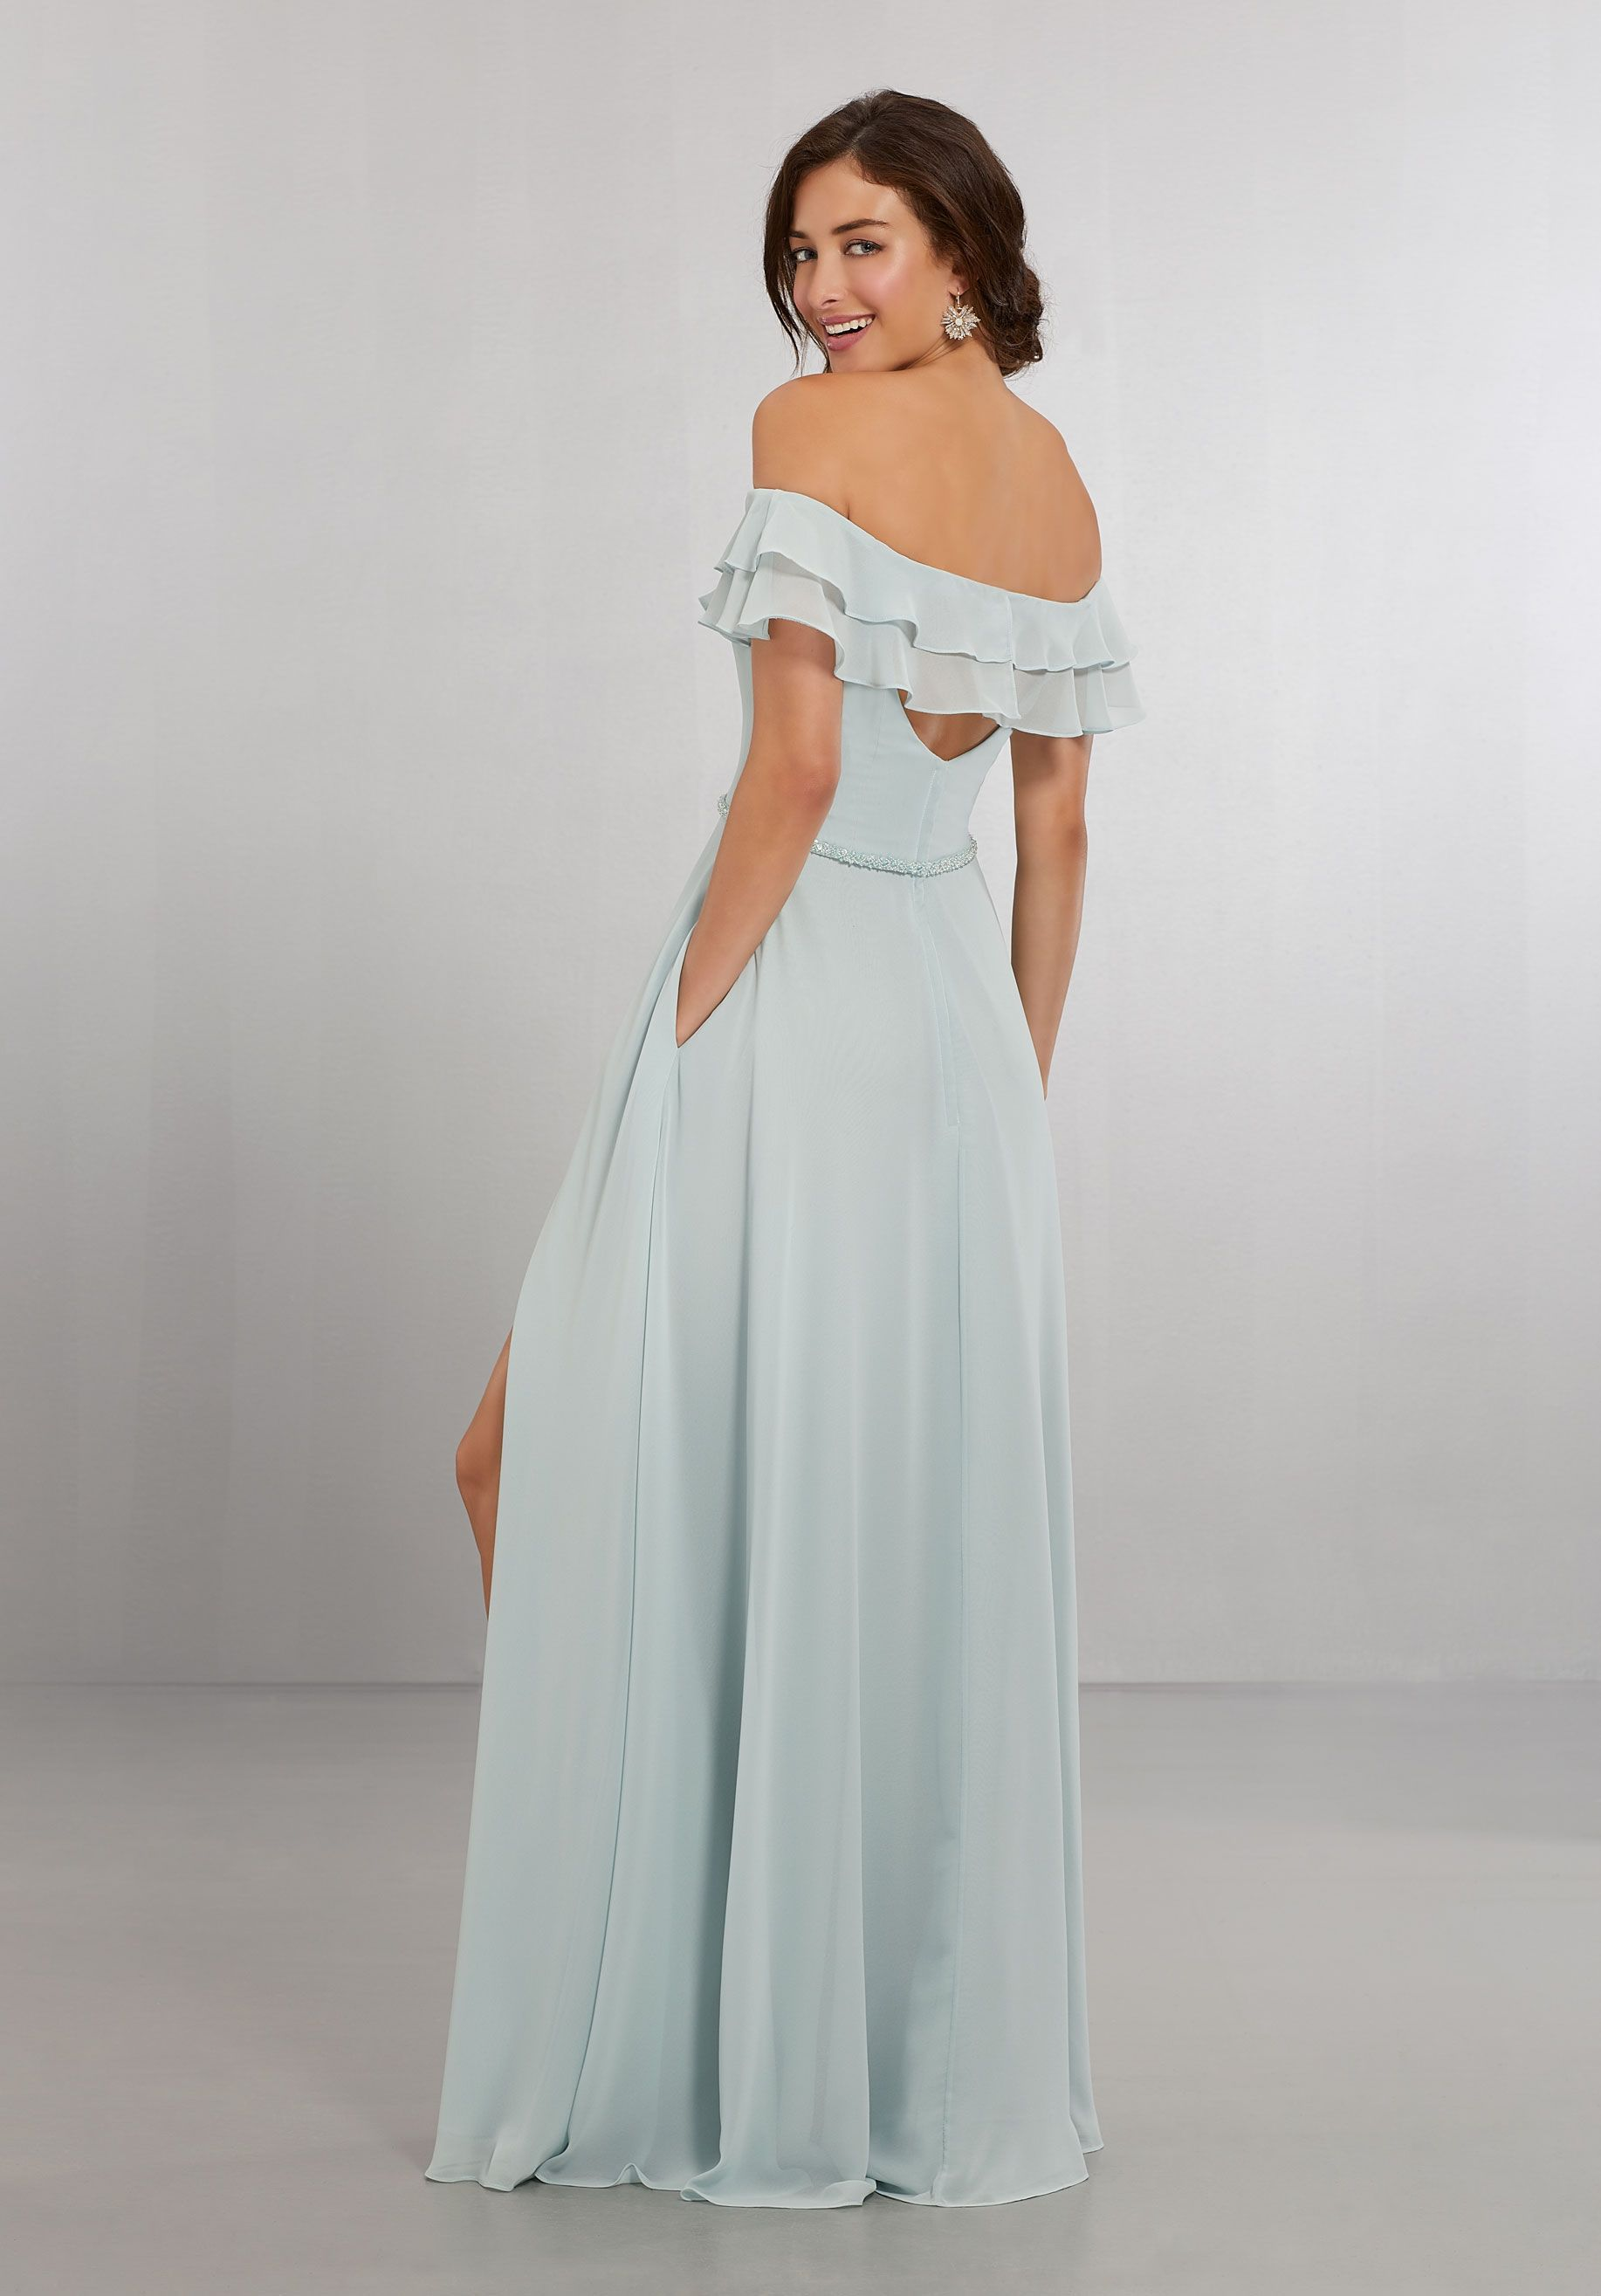 88afd2f7aa2 Chiffon Bridesmaids Dress with Off the Shoulder Flounced Neckline ...